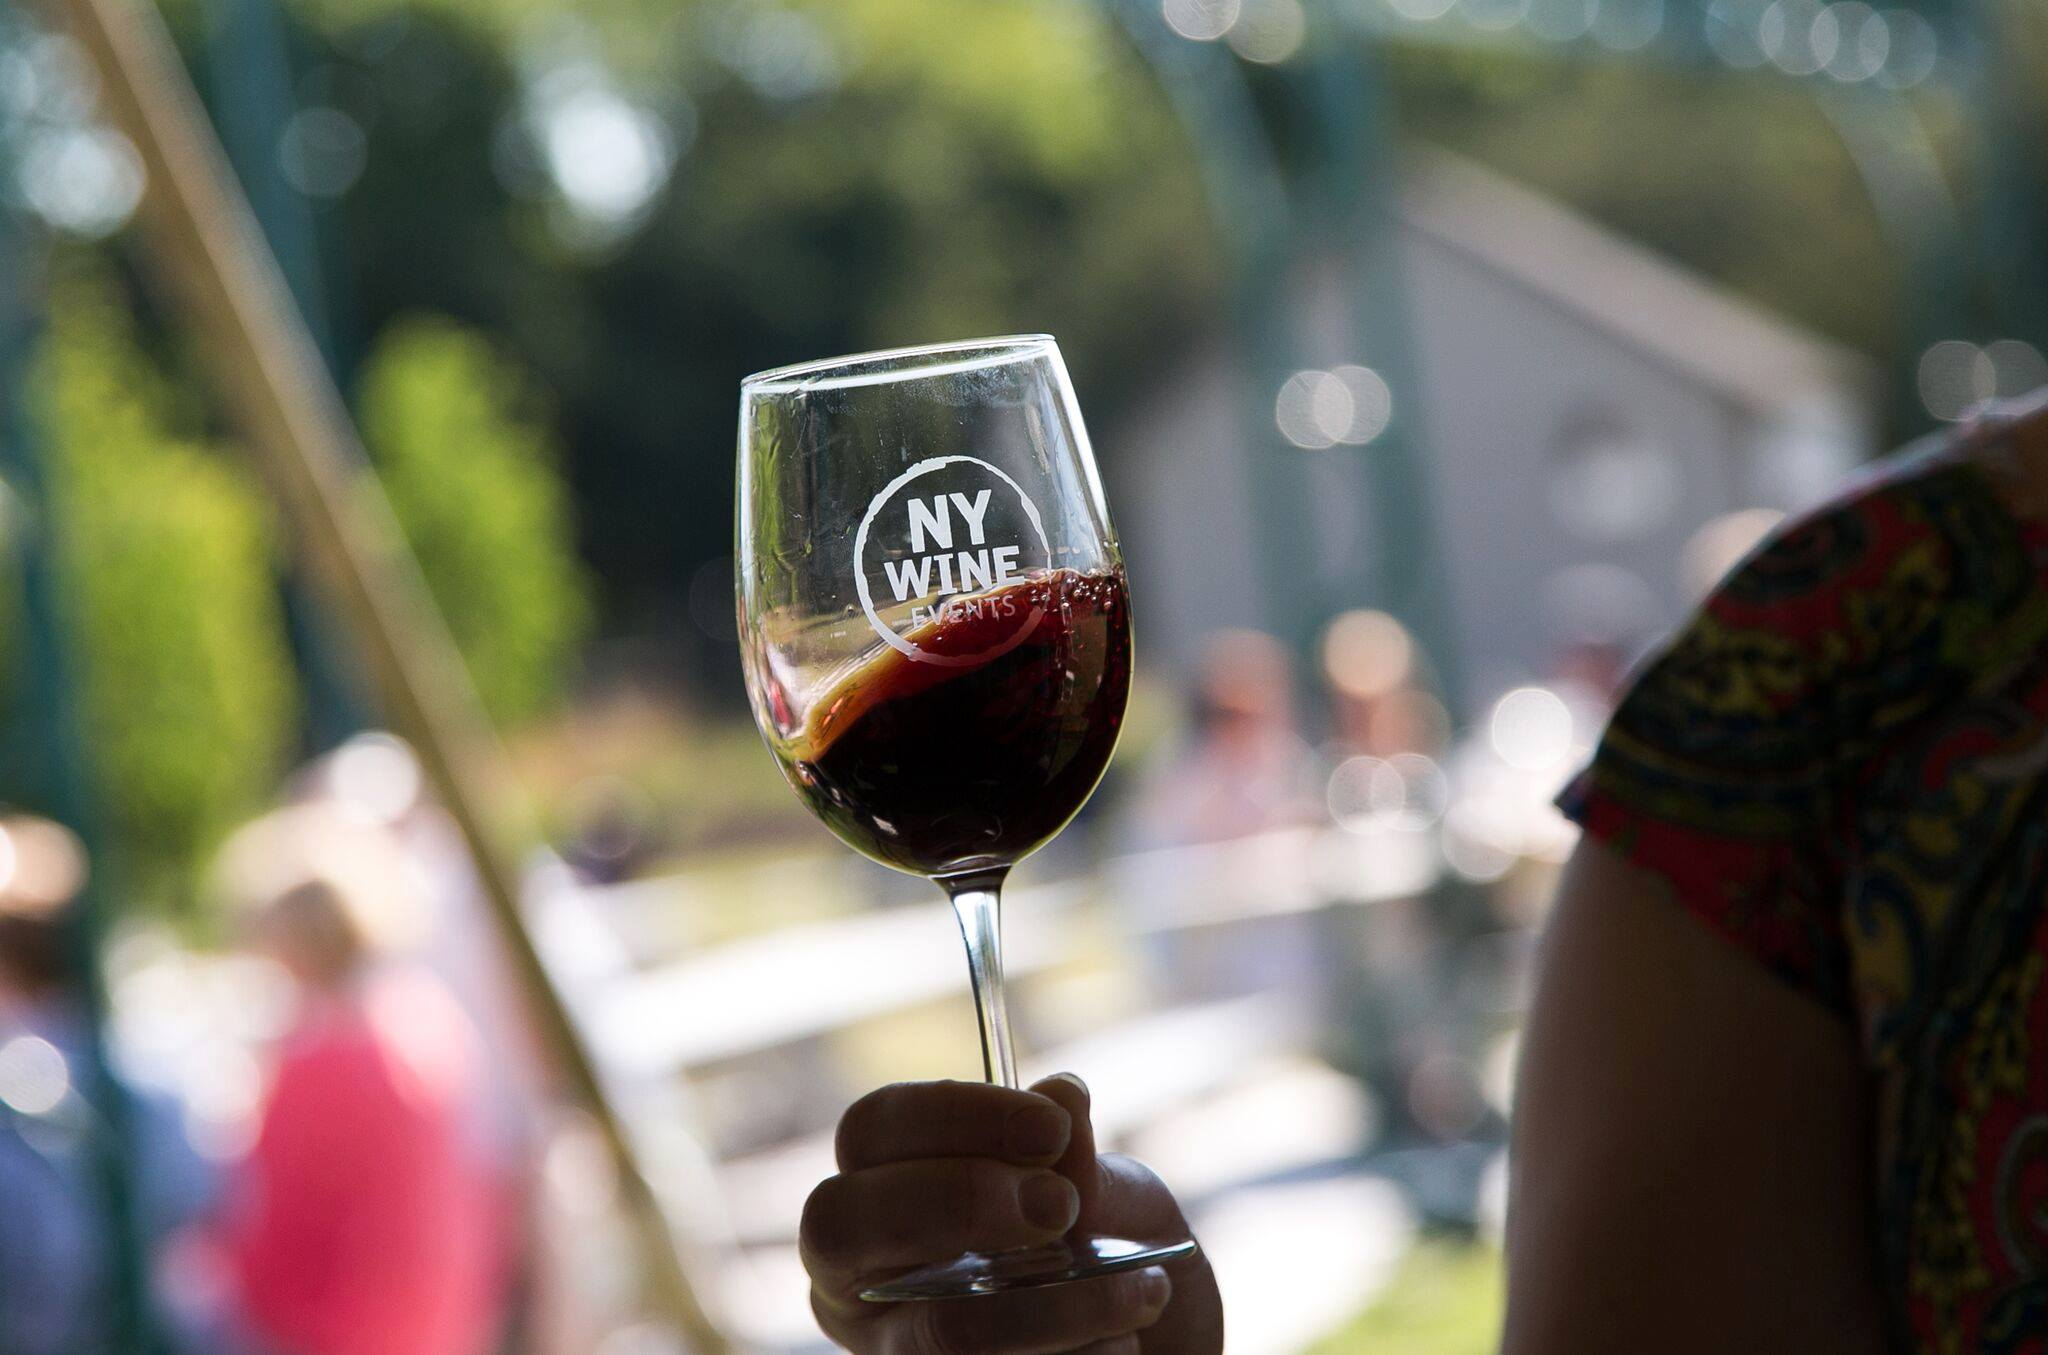 New York Wine Events